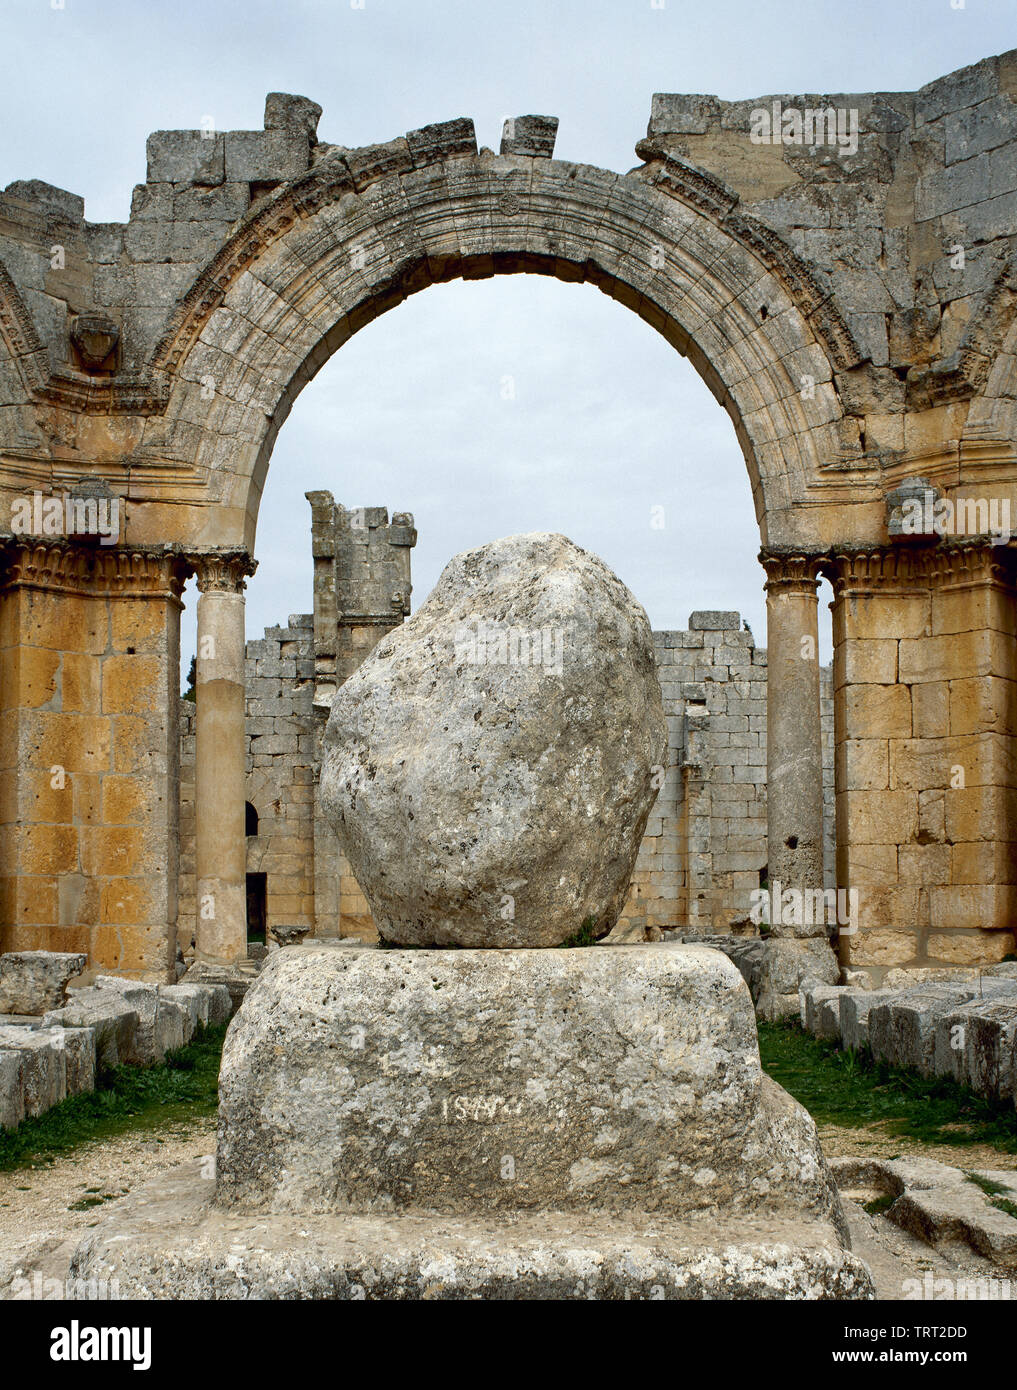 Syria. Aleppo. Church of Saint Simeon Stylites. It was built on the site of the pillar of St. Simeon Stylites. Byzantine style. Remains of the pillar. Mount Simeon. Historical photography (taken before the Syrian Civil War). - Stock Image